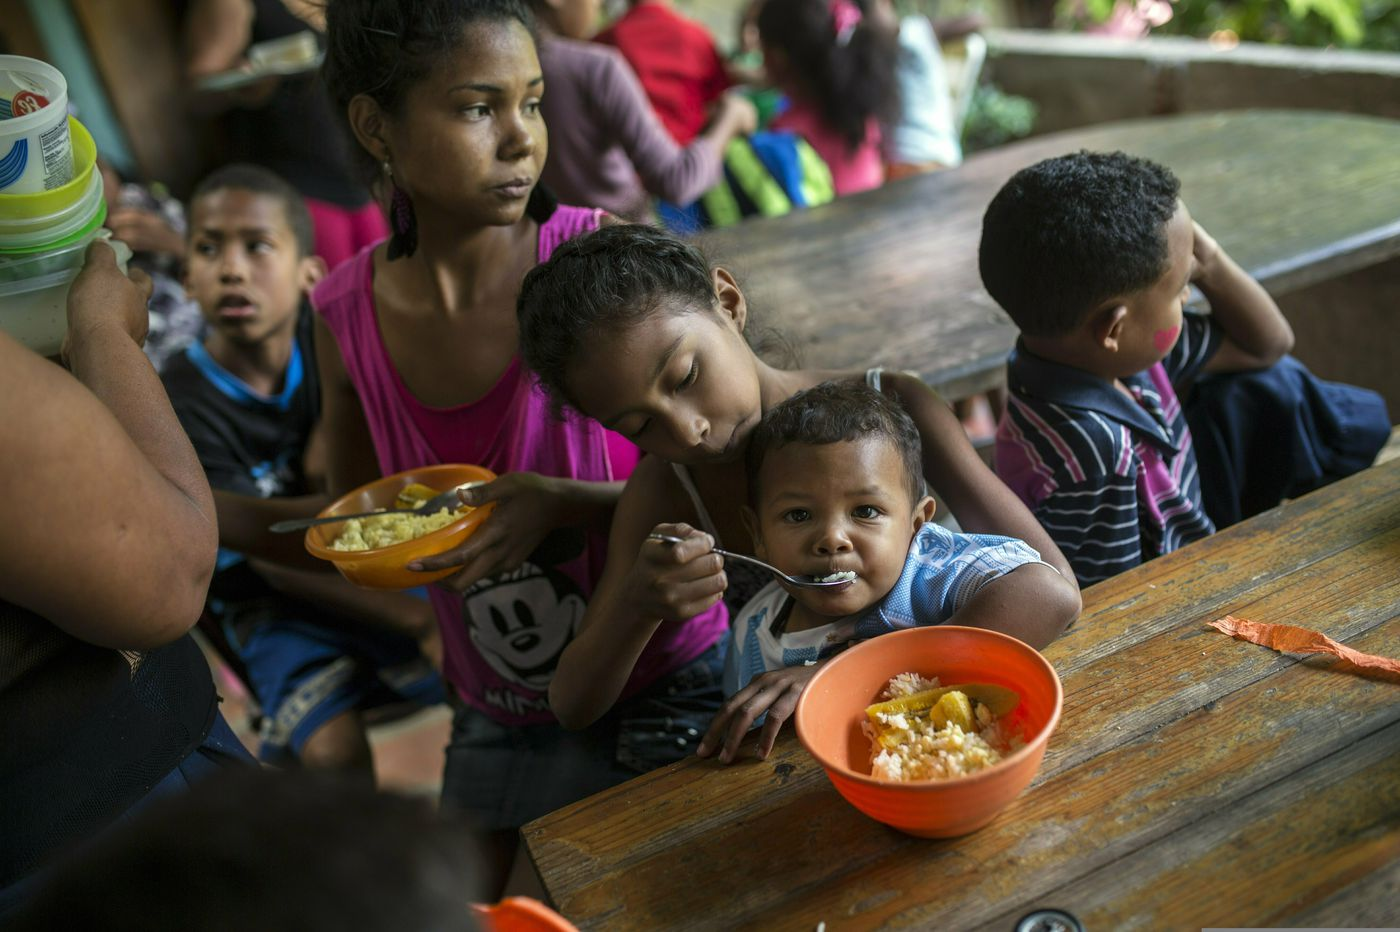 Venezuelans find ways to cope with inflation and hunger